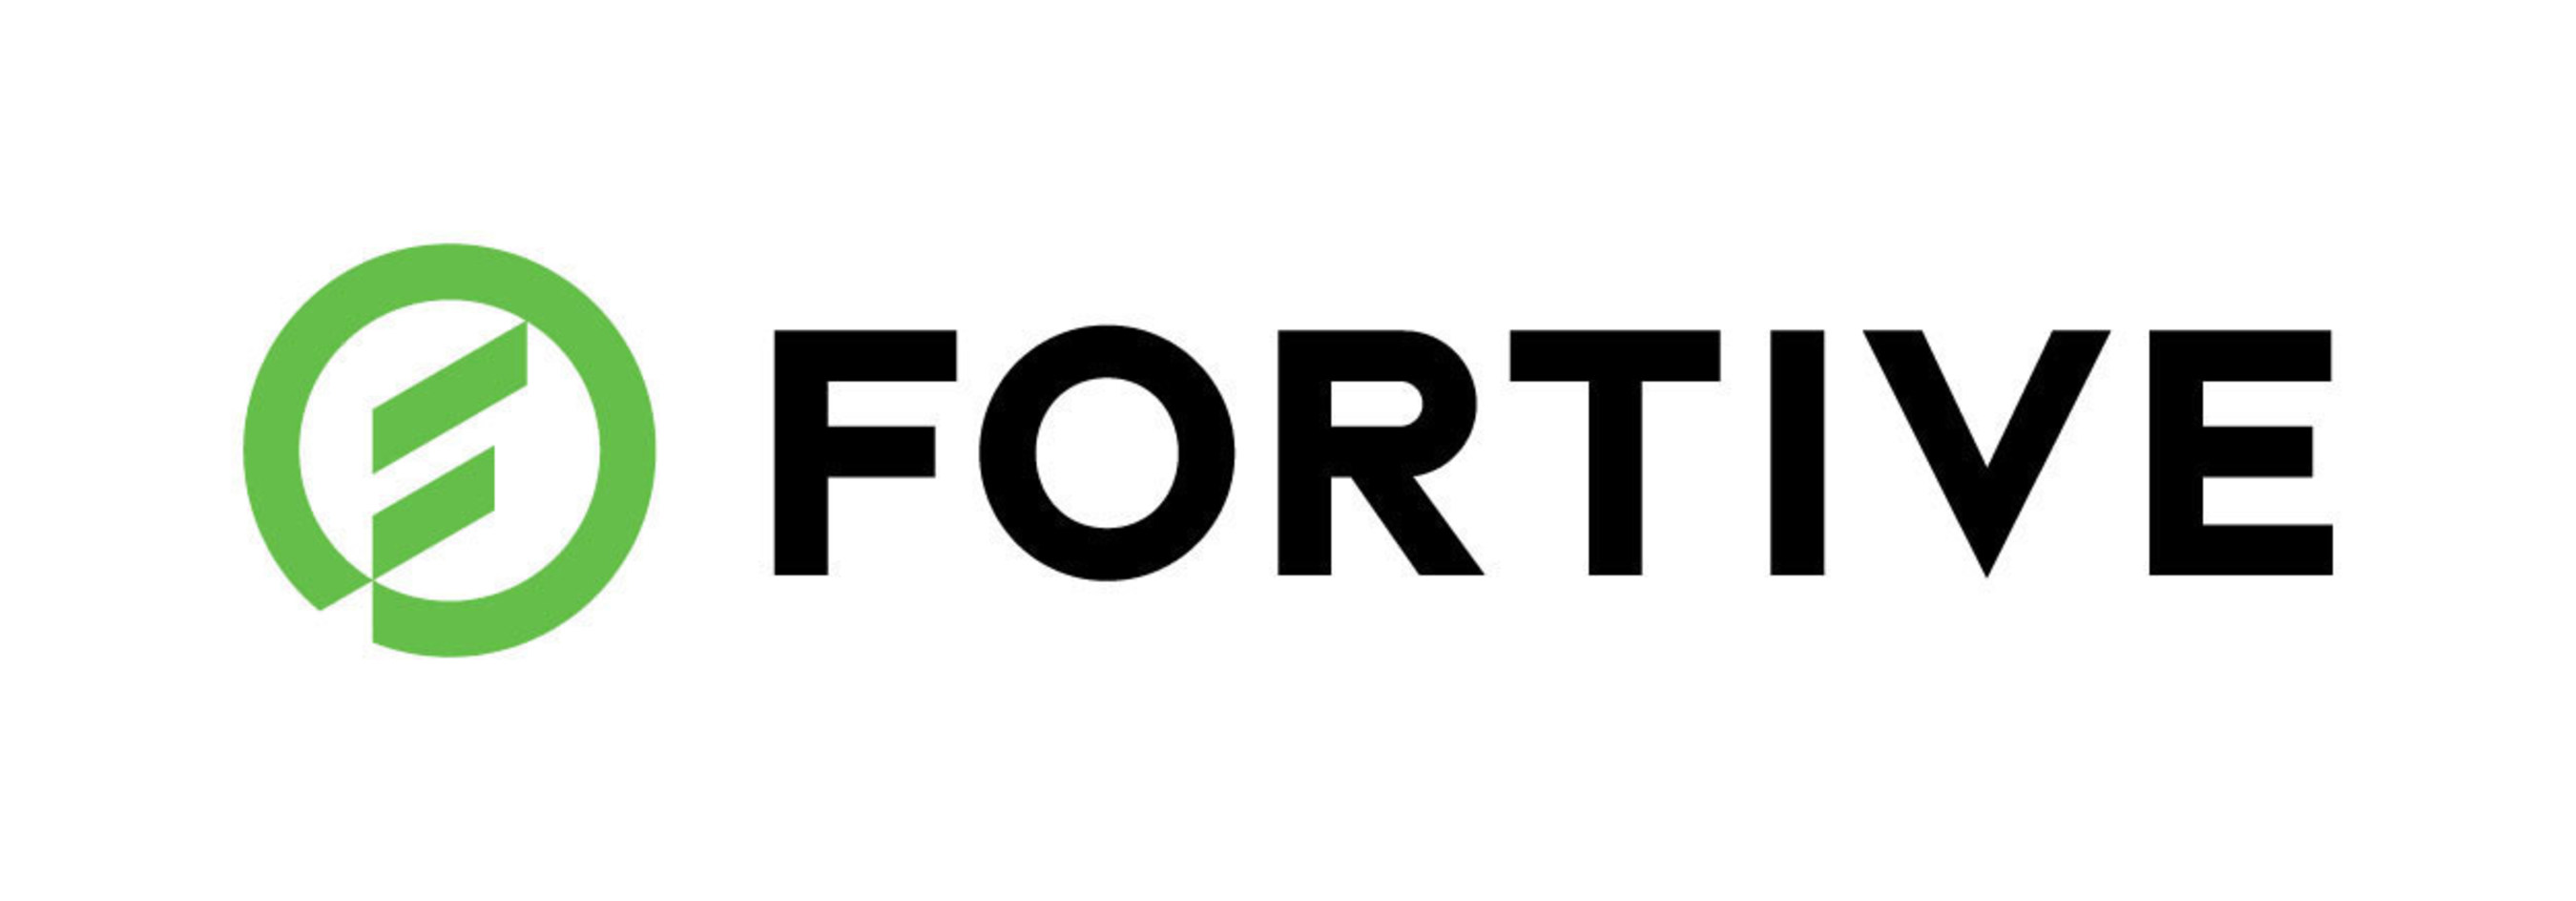 Fortive Schedules Third Quarter 2016 Earnings Conference Call